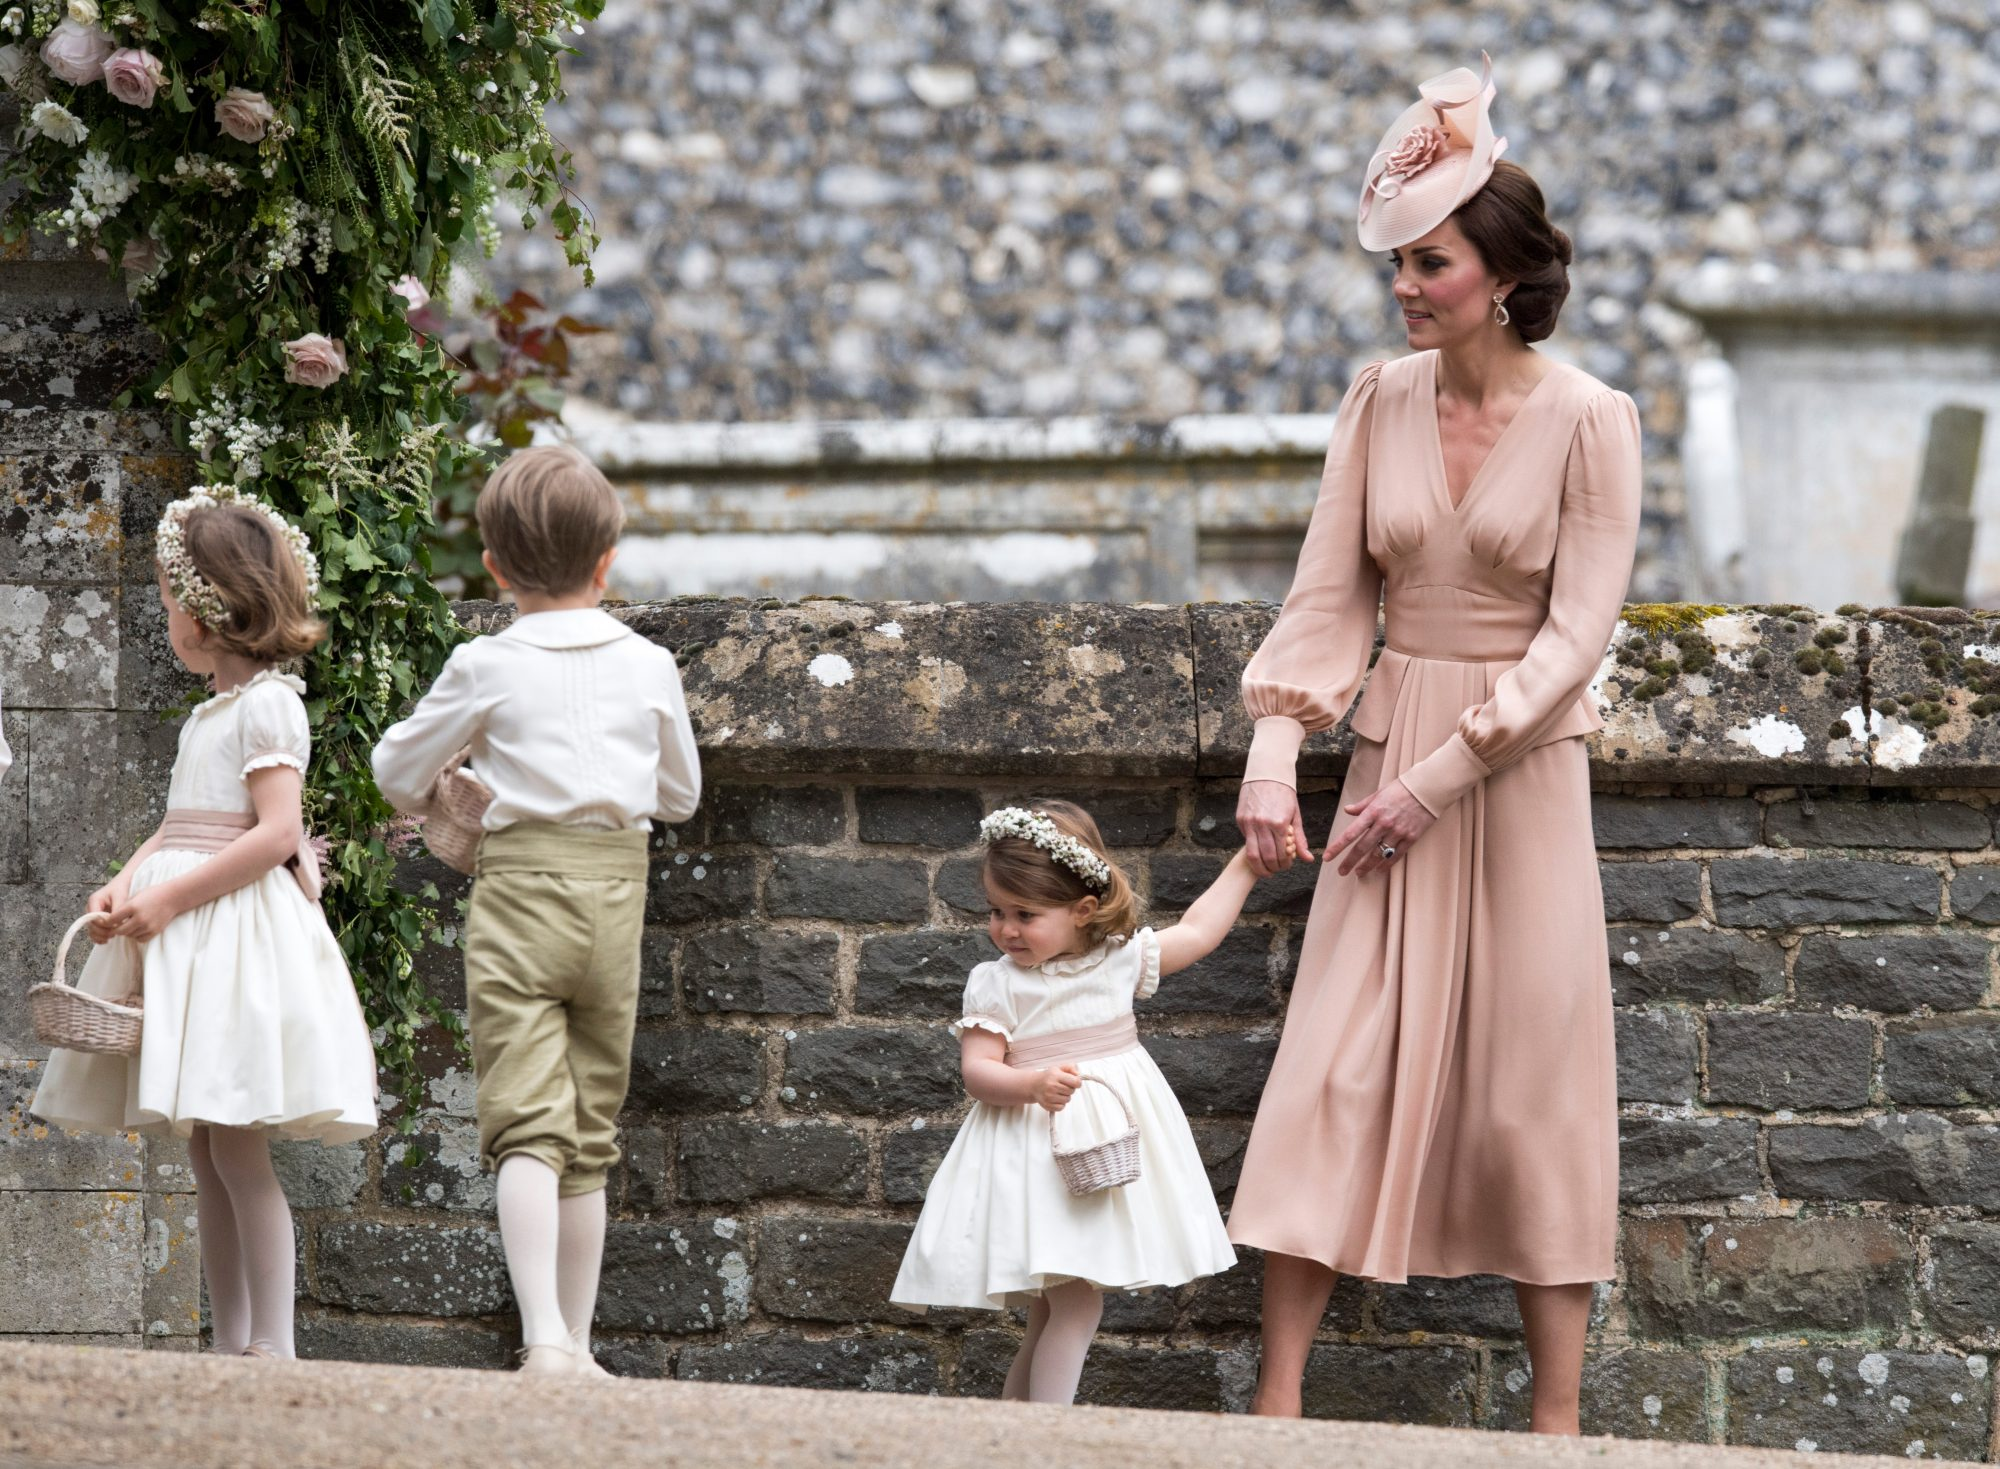 Kates Dress For Pippas Wedding Made Headlines For A Specific